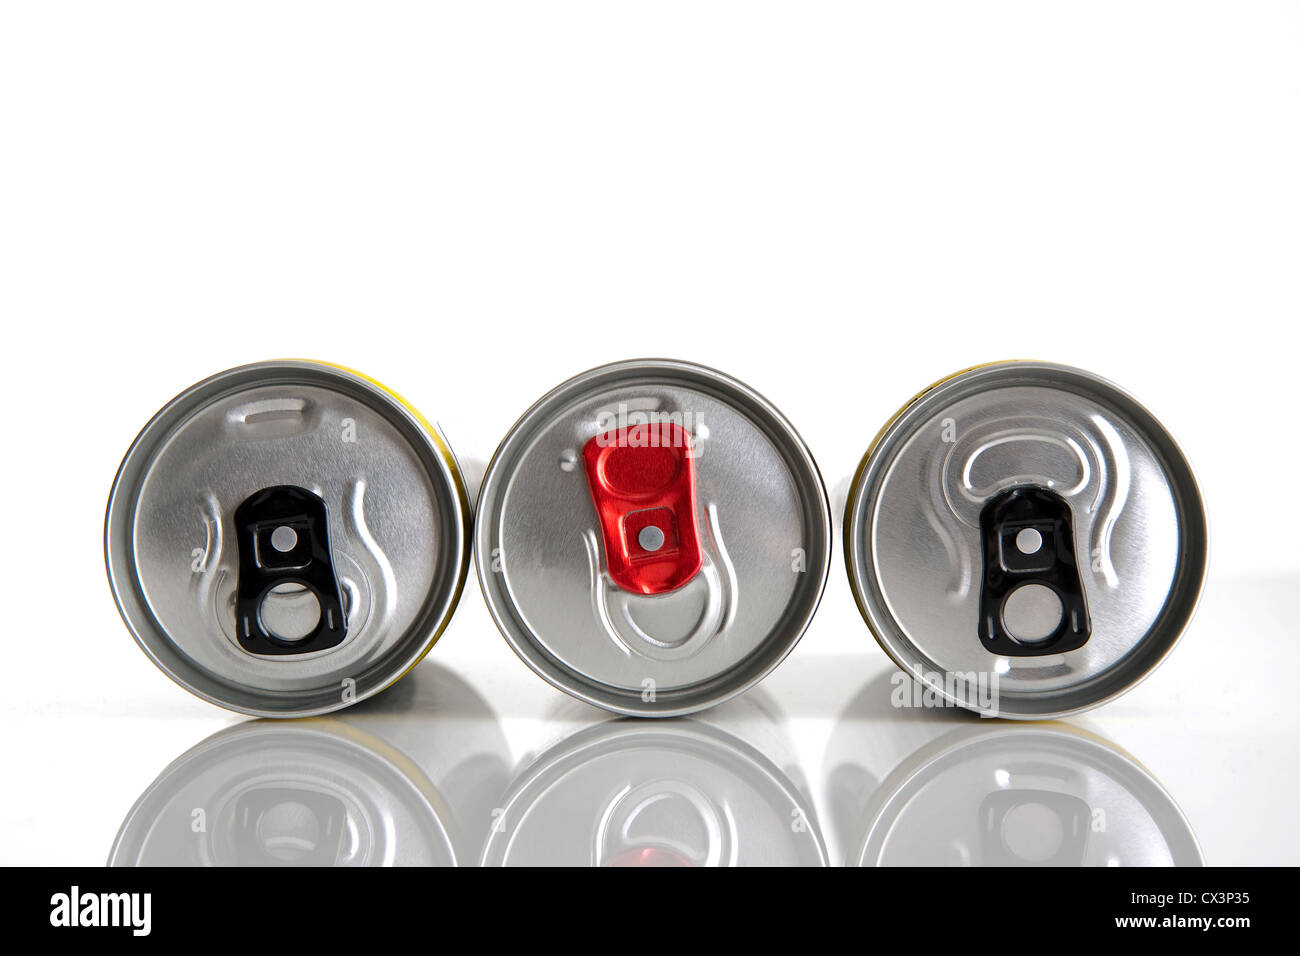 Three silver aluminum cans for drinks and their black and red rings opening - Stock Image